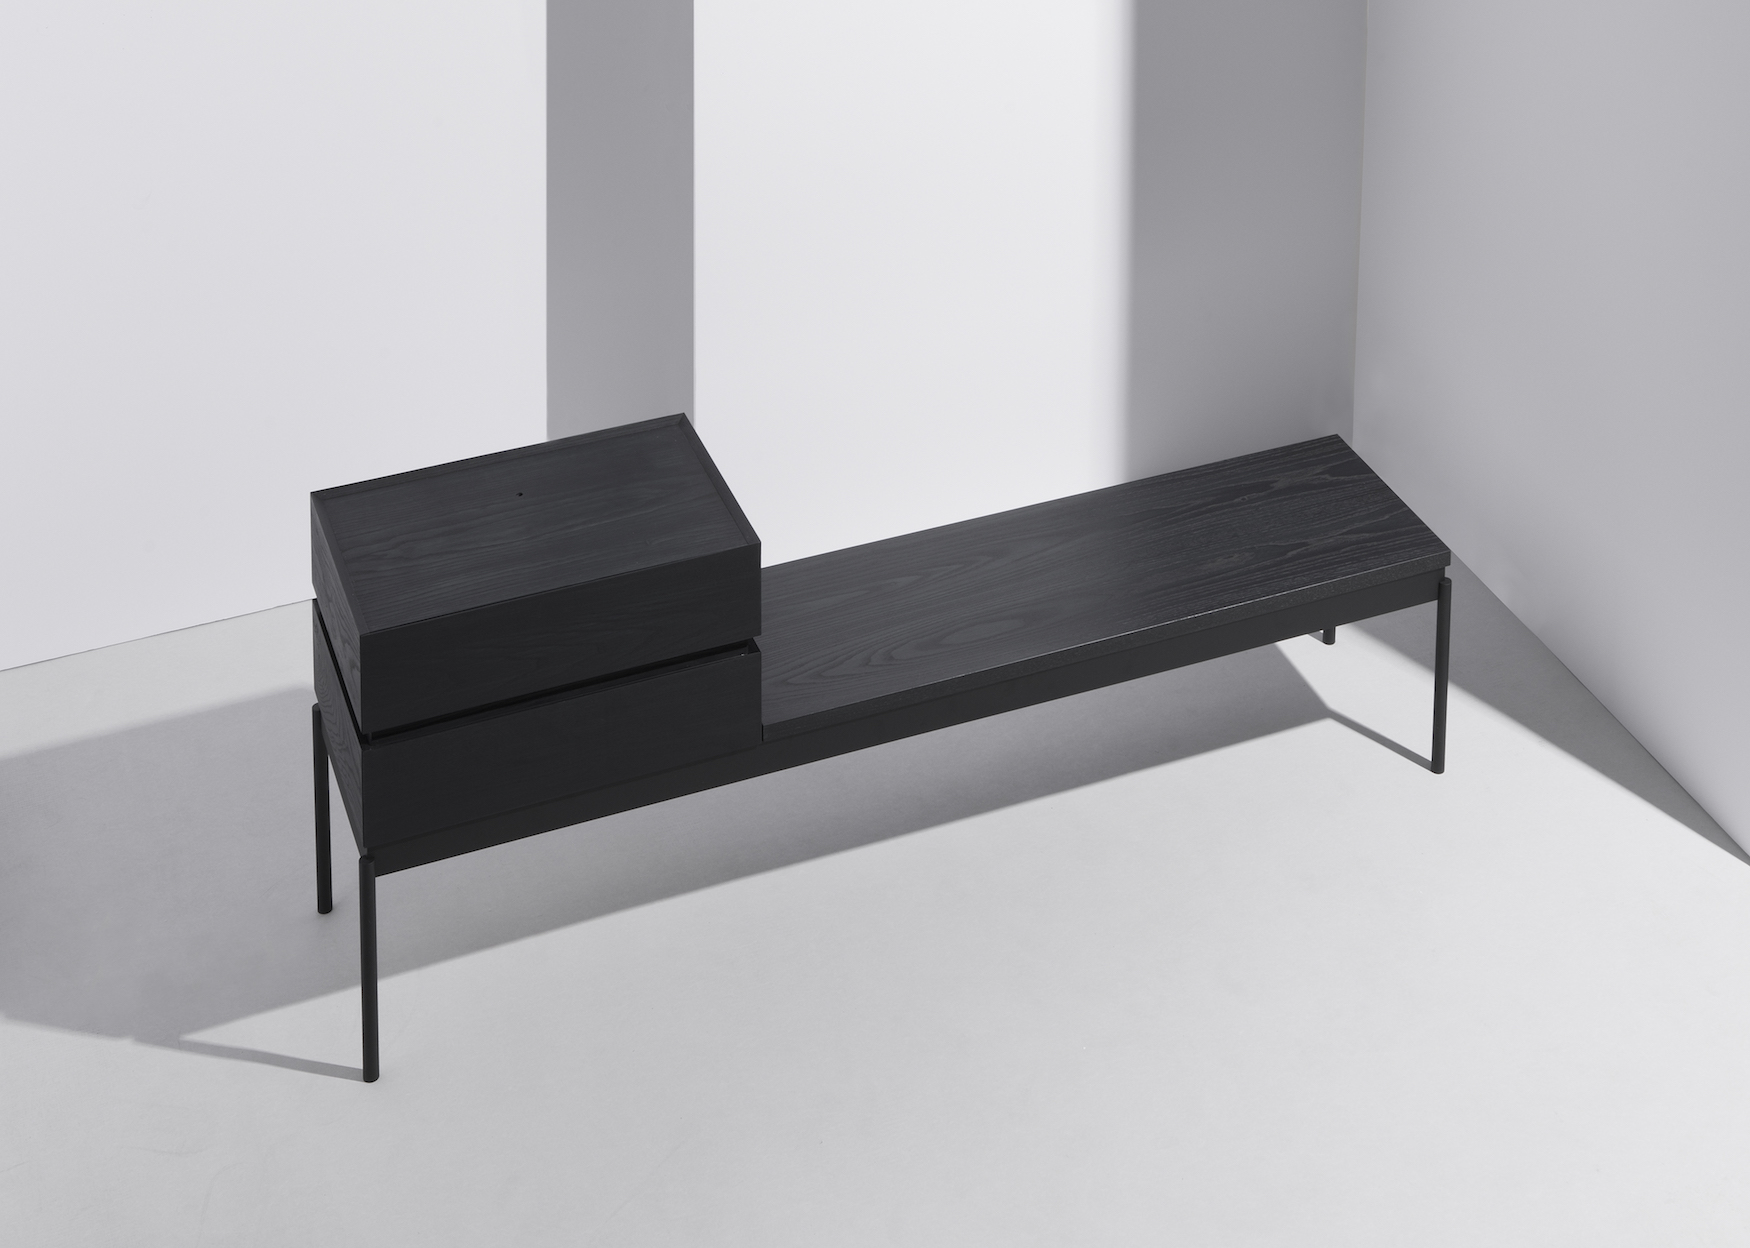 Recess Collection by Earnest Studio for Furnishing Utopia